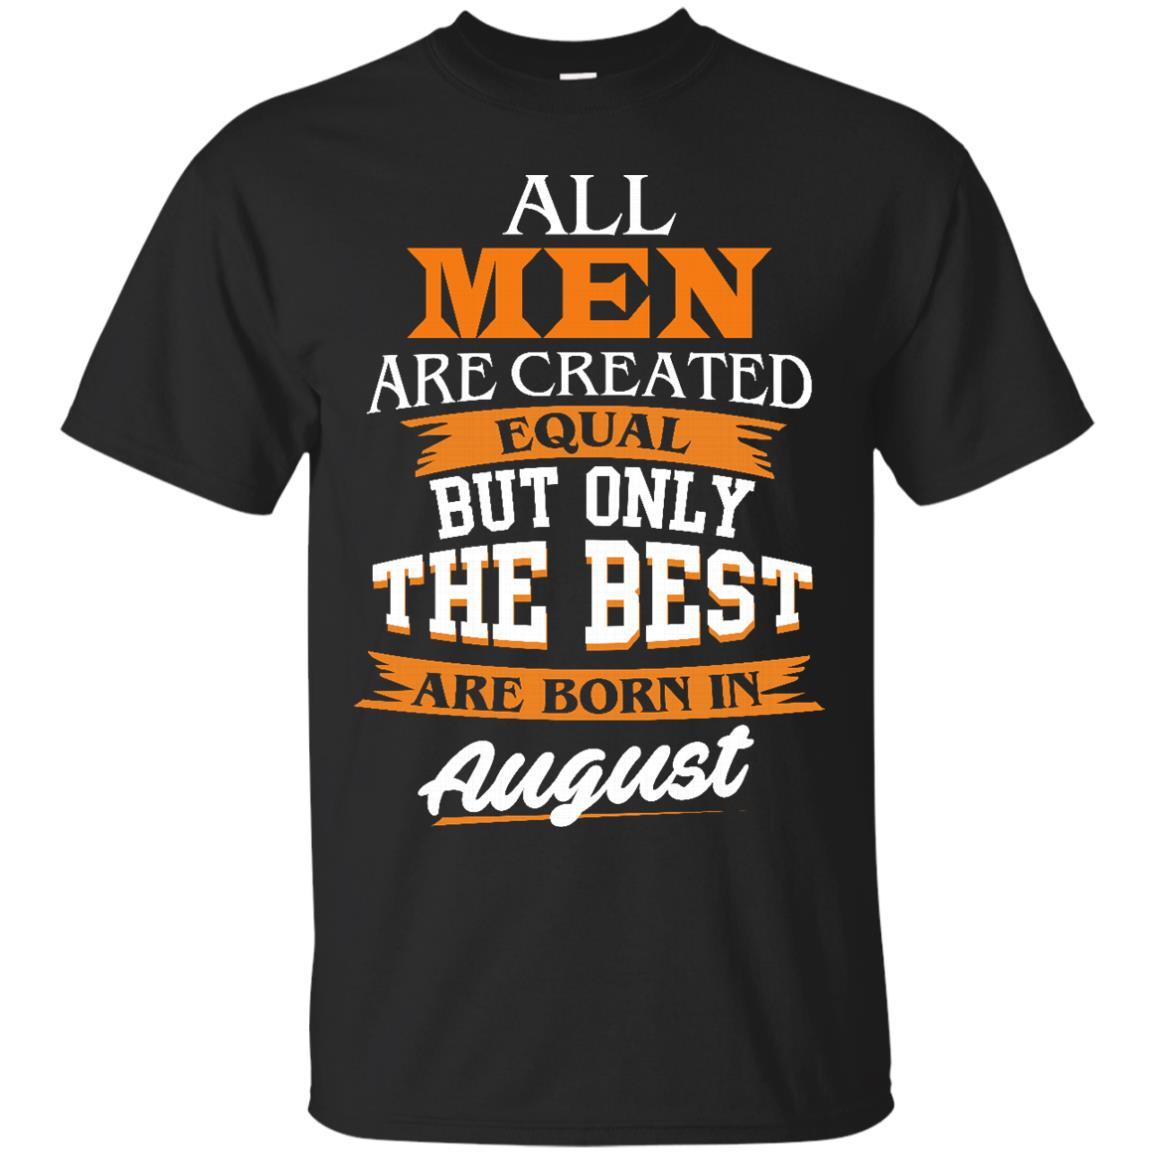 imagepx Jordan: All men are created equal but only the best are born in August t shirts